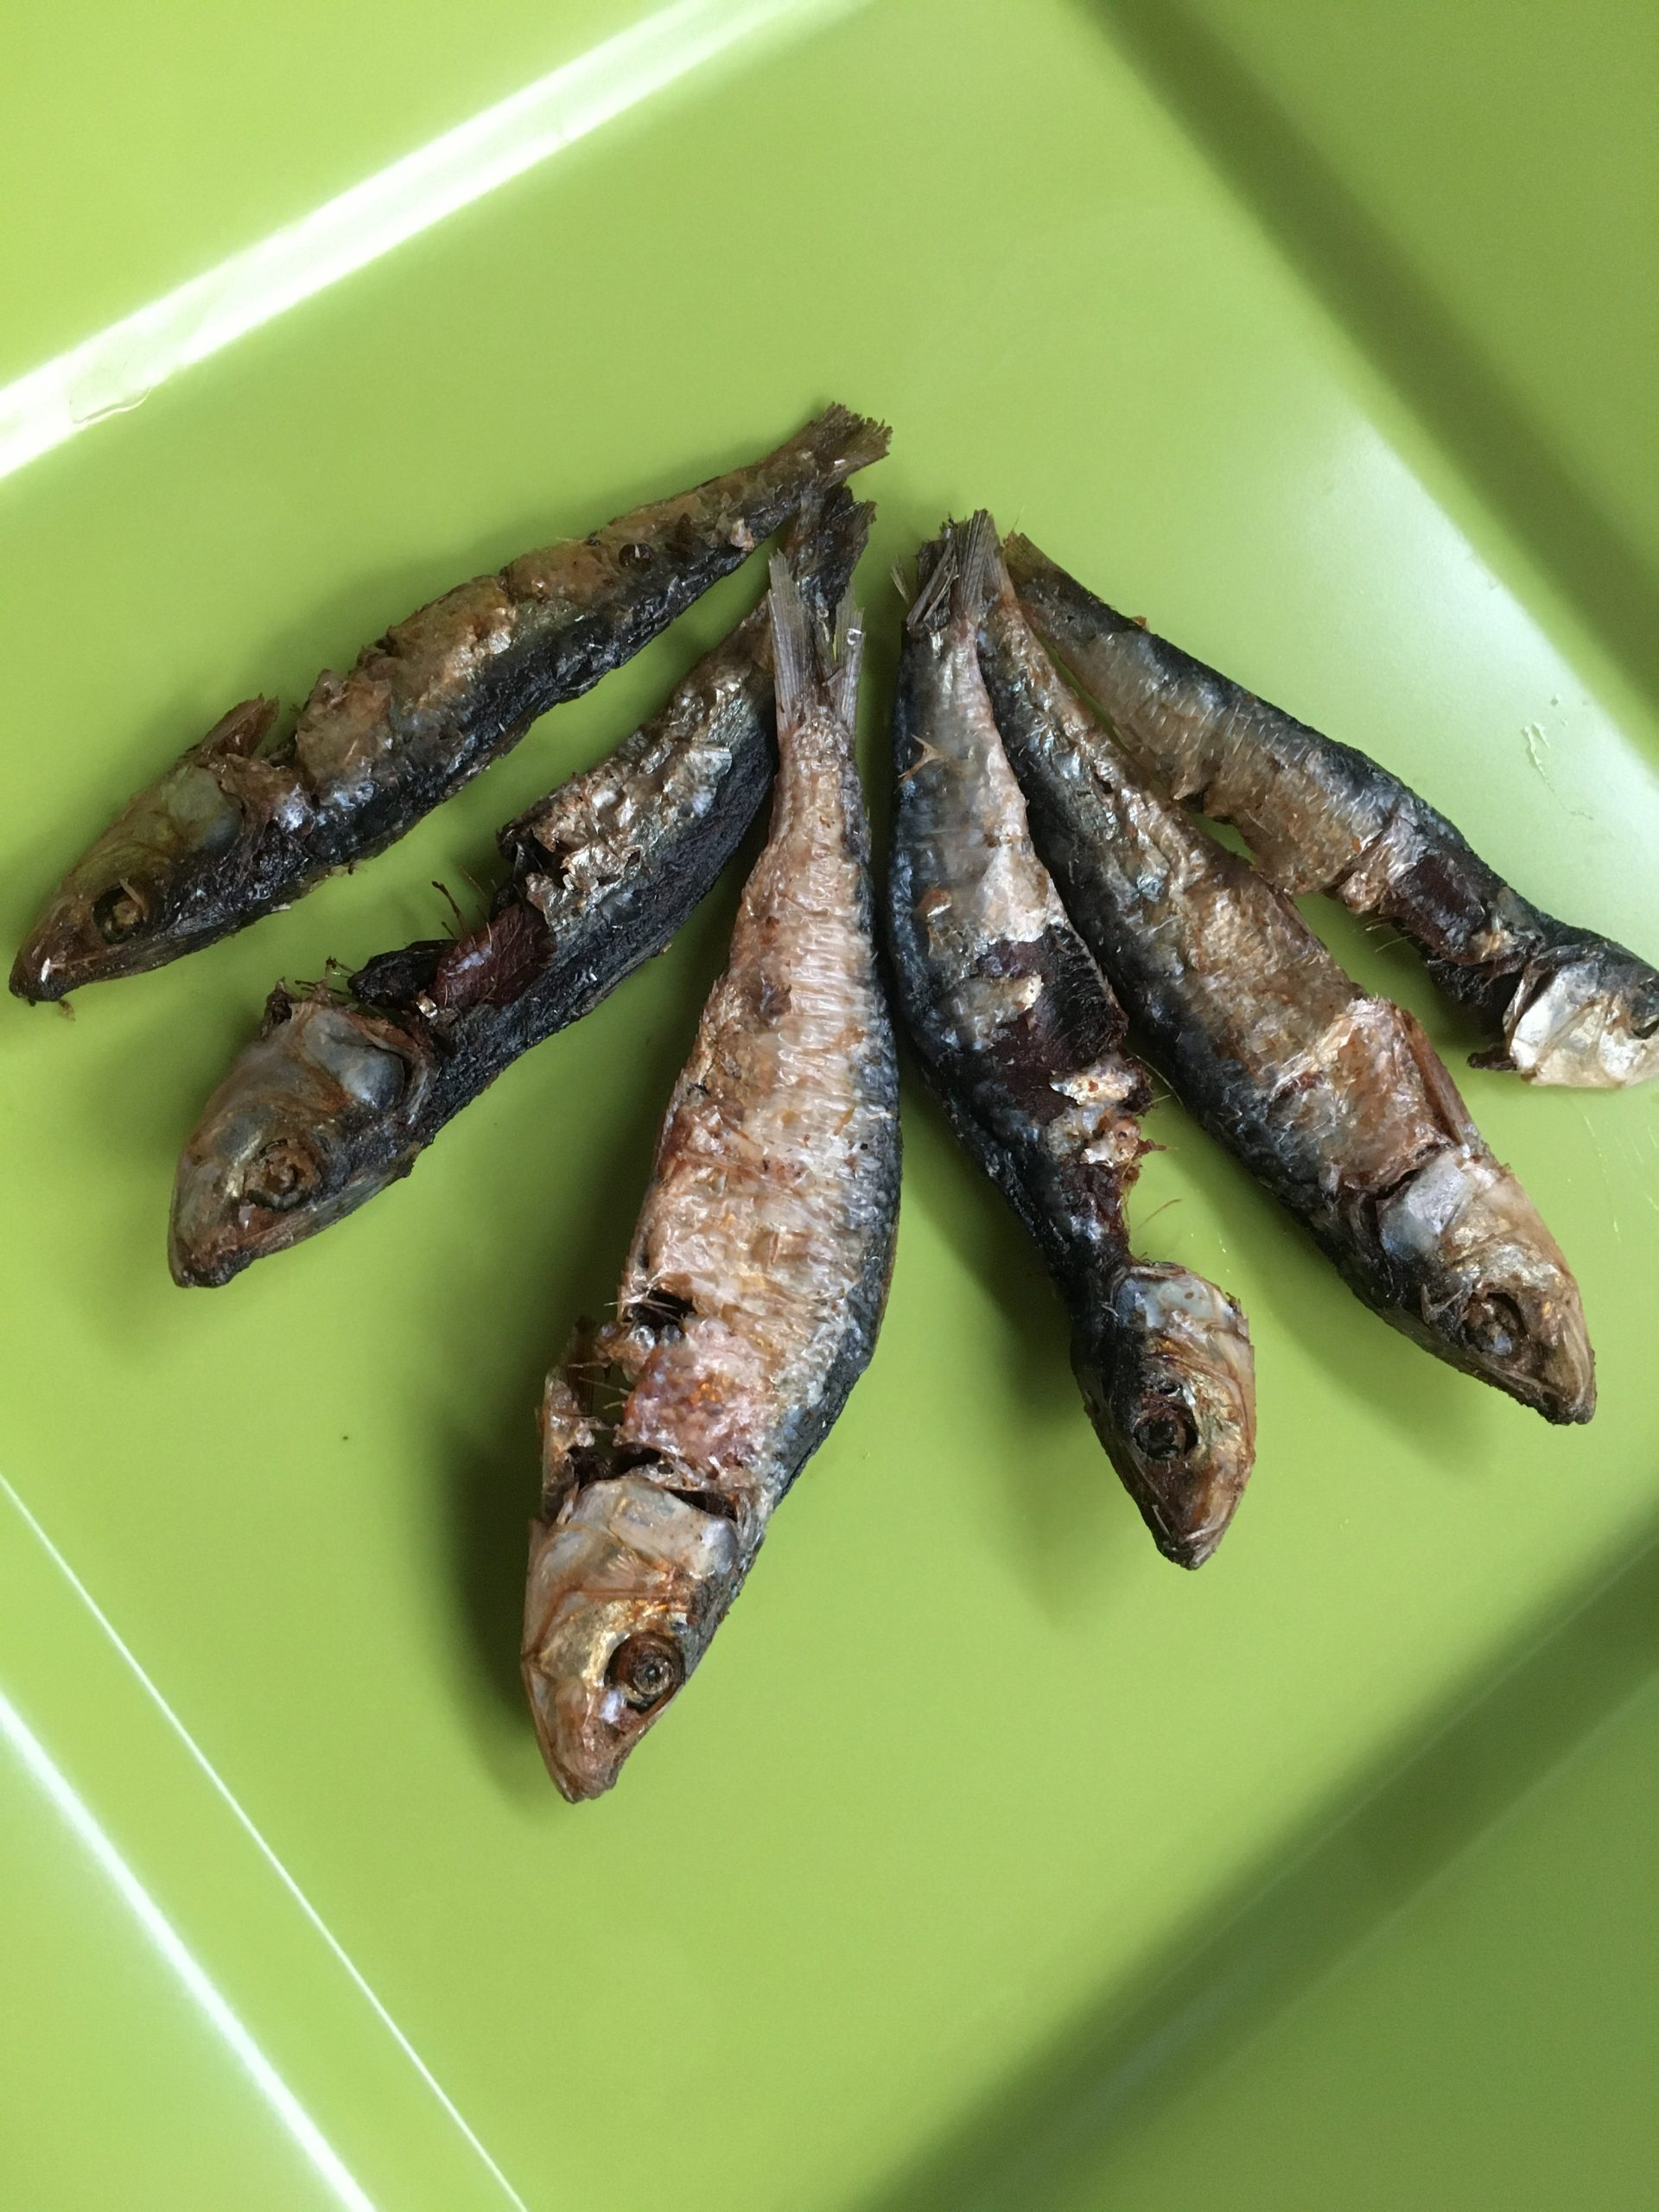 Six pieces of dried fish on a green plate.